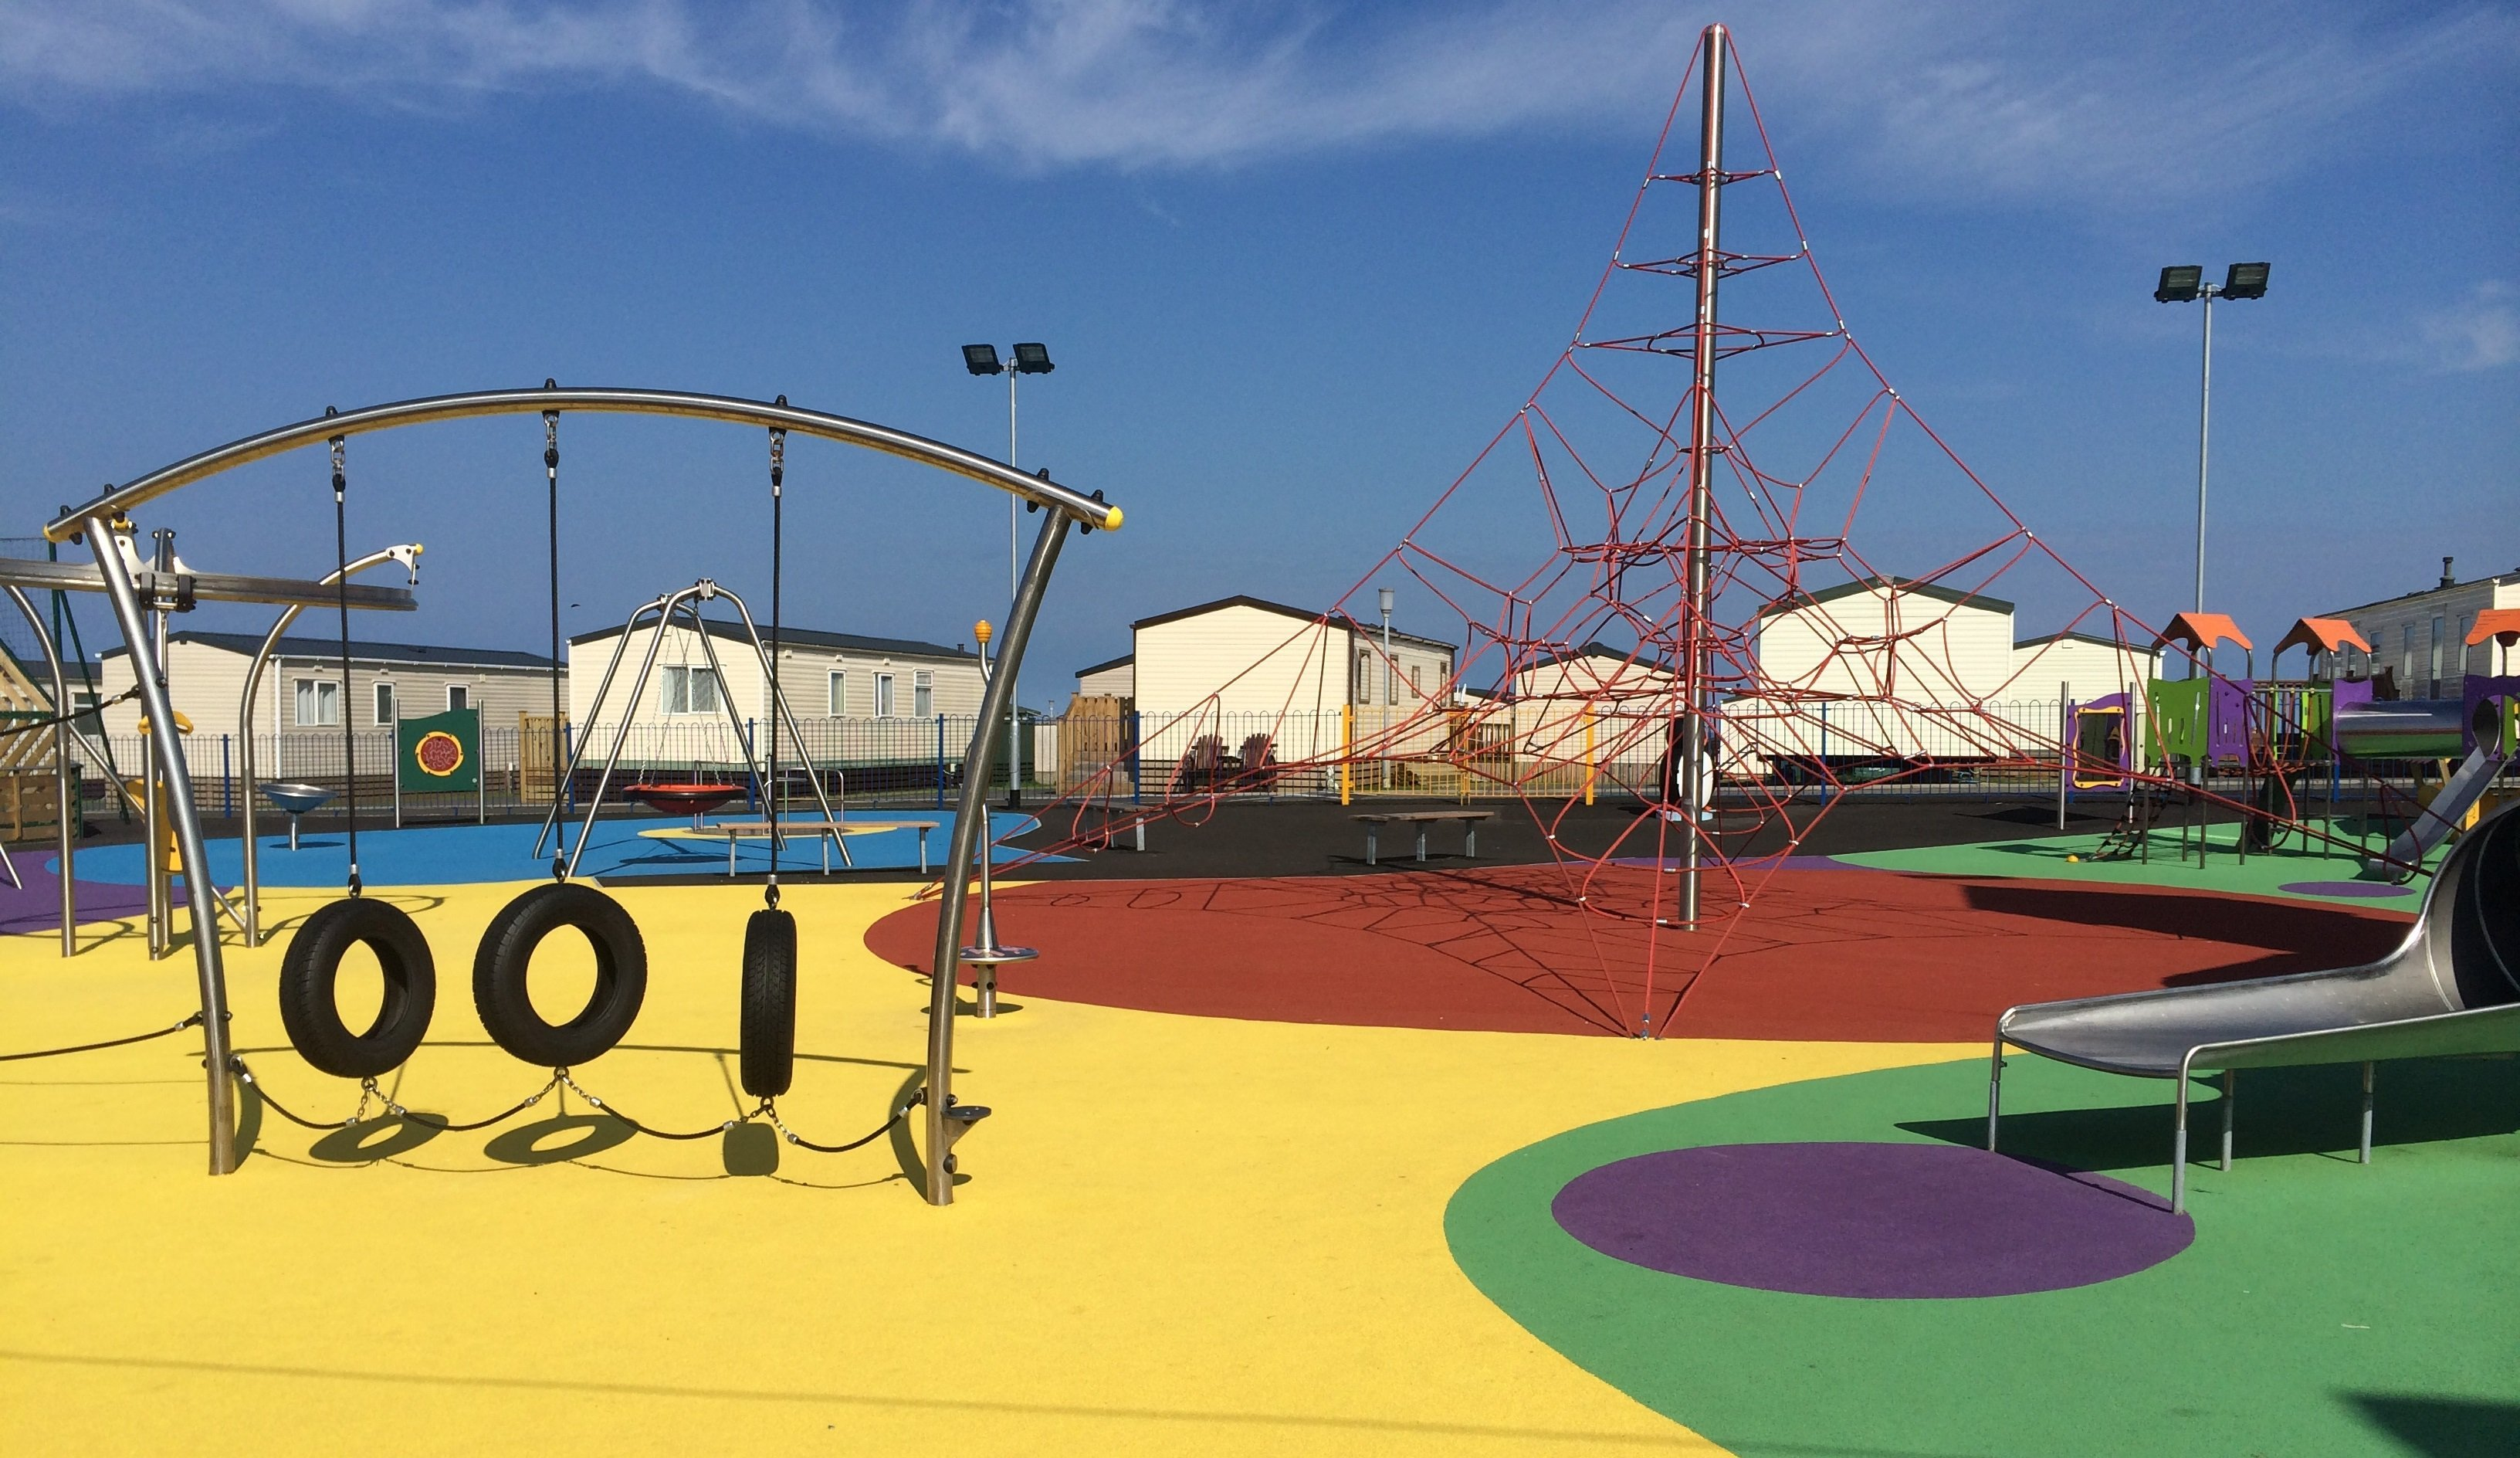 Tyre swings, a slide, and a rope climbing frame in an outdoor area surrounded by chalets